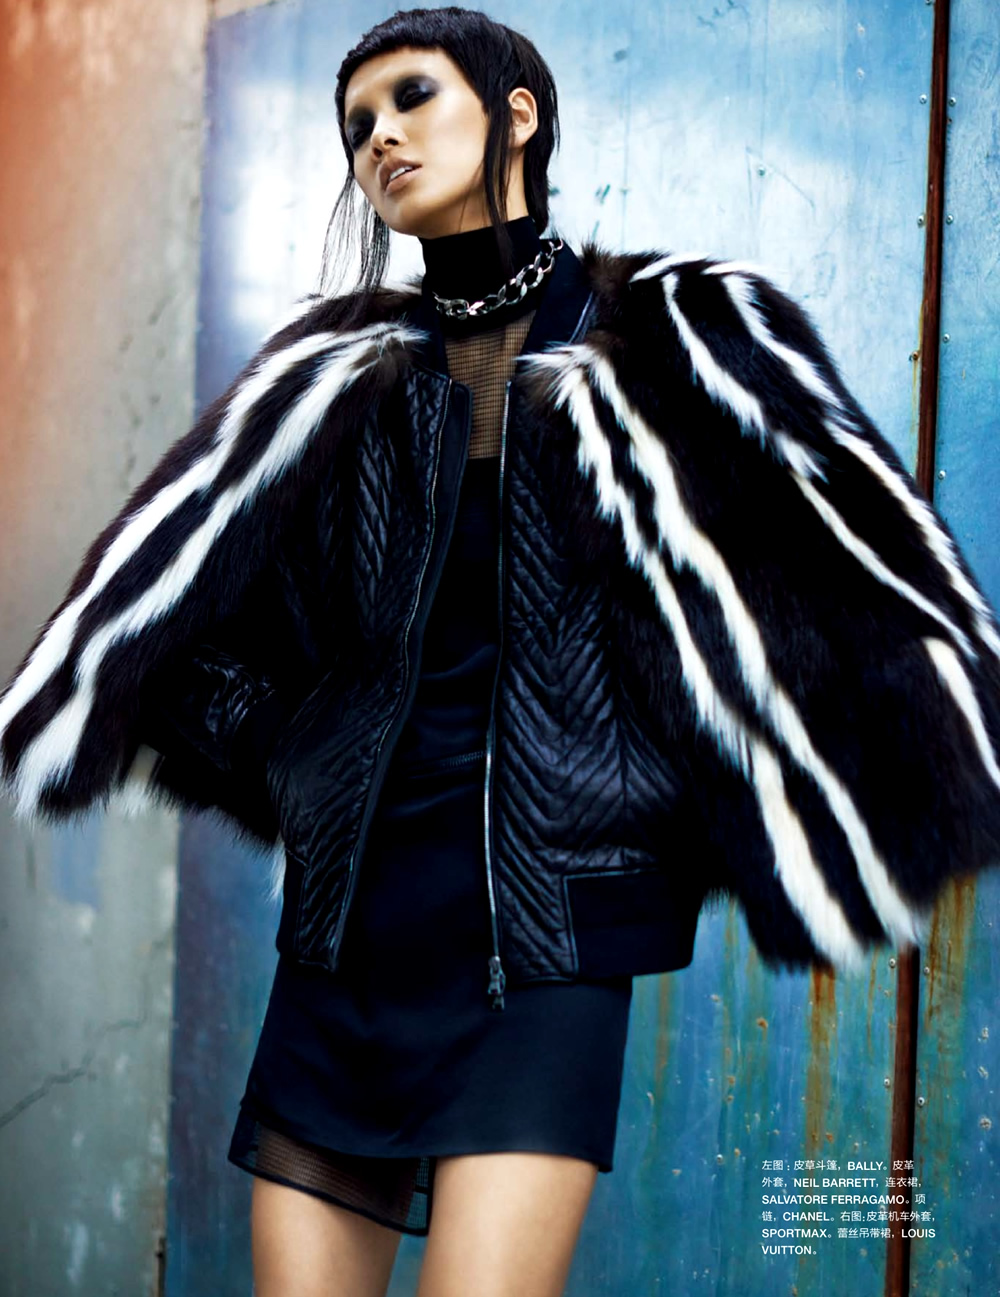 beijing-eye-photographer-china-fashion-trunk-xu-grace-gao-numero-november021_